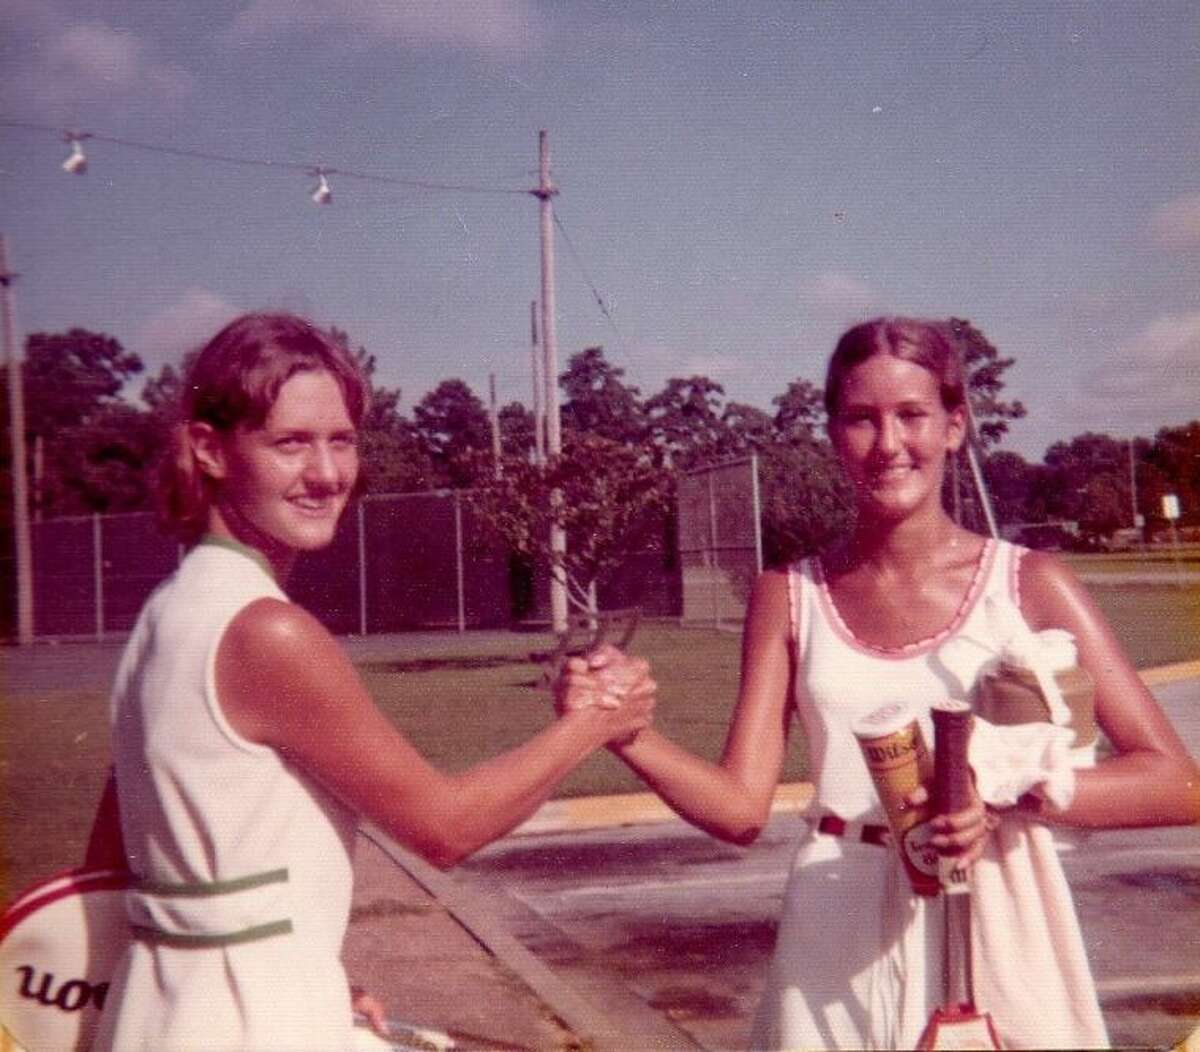 Jan Heuer, on the right, and her high school doubles partner Linda Roco Taylor at the 1973 Shakey's Junior Open Tennis Tournament for the Houston City Championship, held at the former Southwest Tennis Center, now named for Lee LeClear, and Memorial Park. Heuer took lessons from LeClear while he was manager and tennis pro at the center.